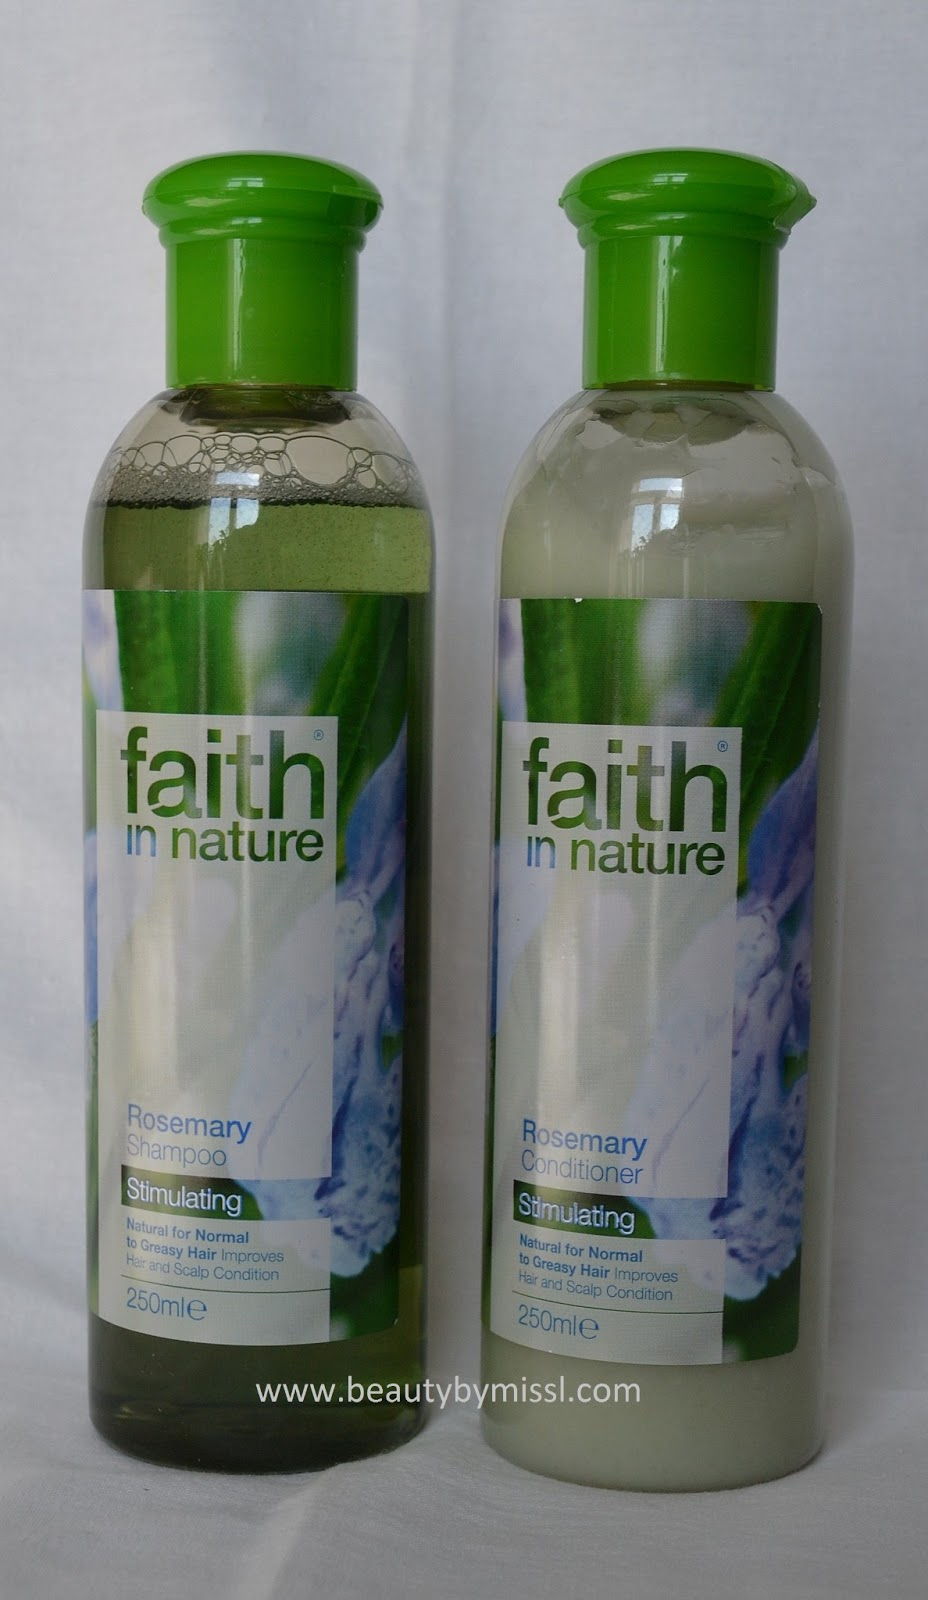 rosmariini shampoon palsam, rosemary shampoo conditioner